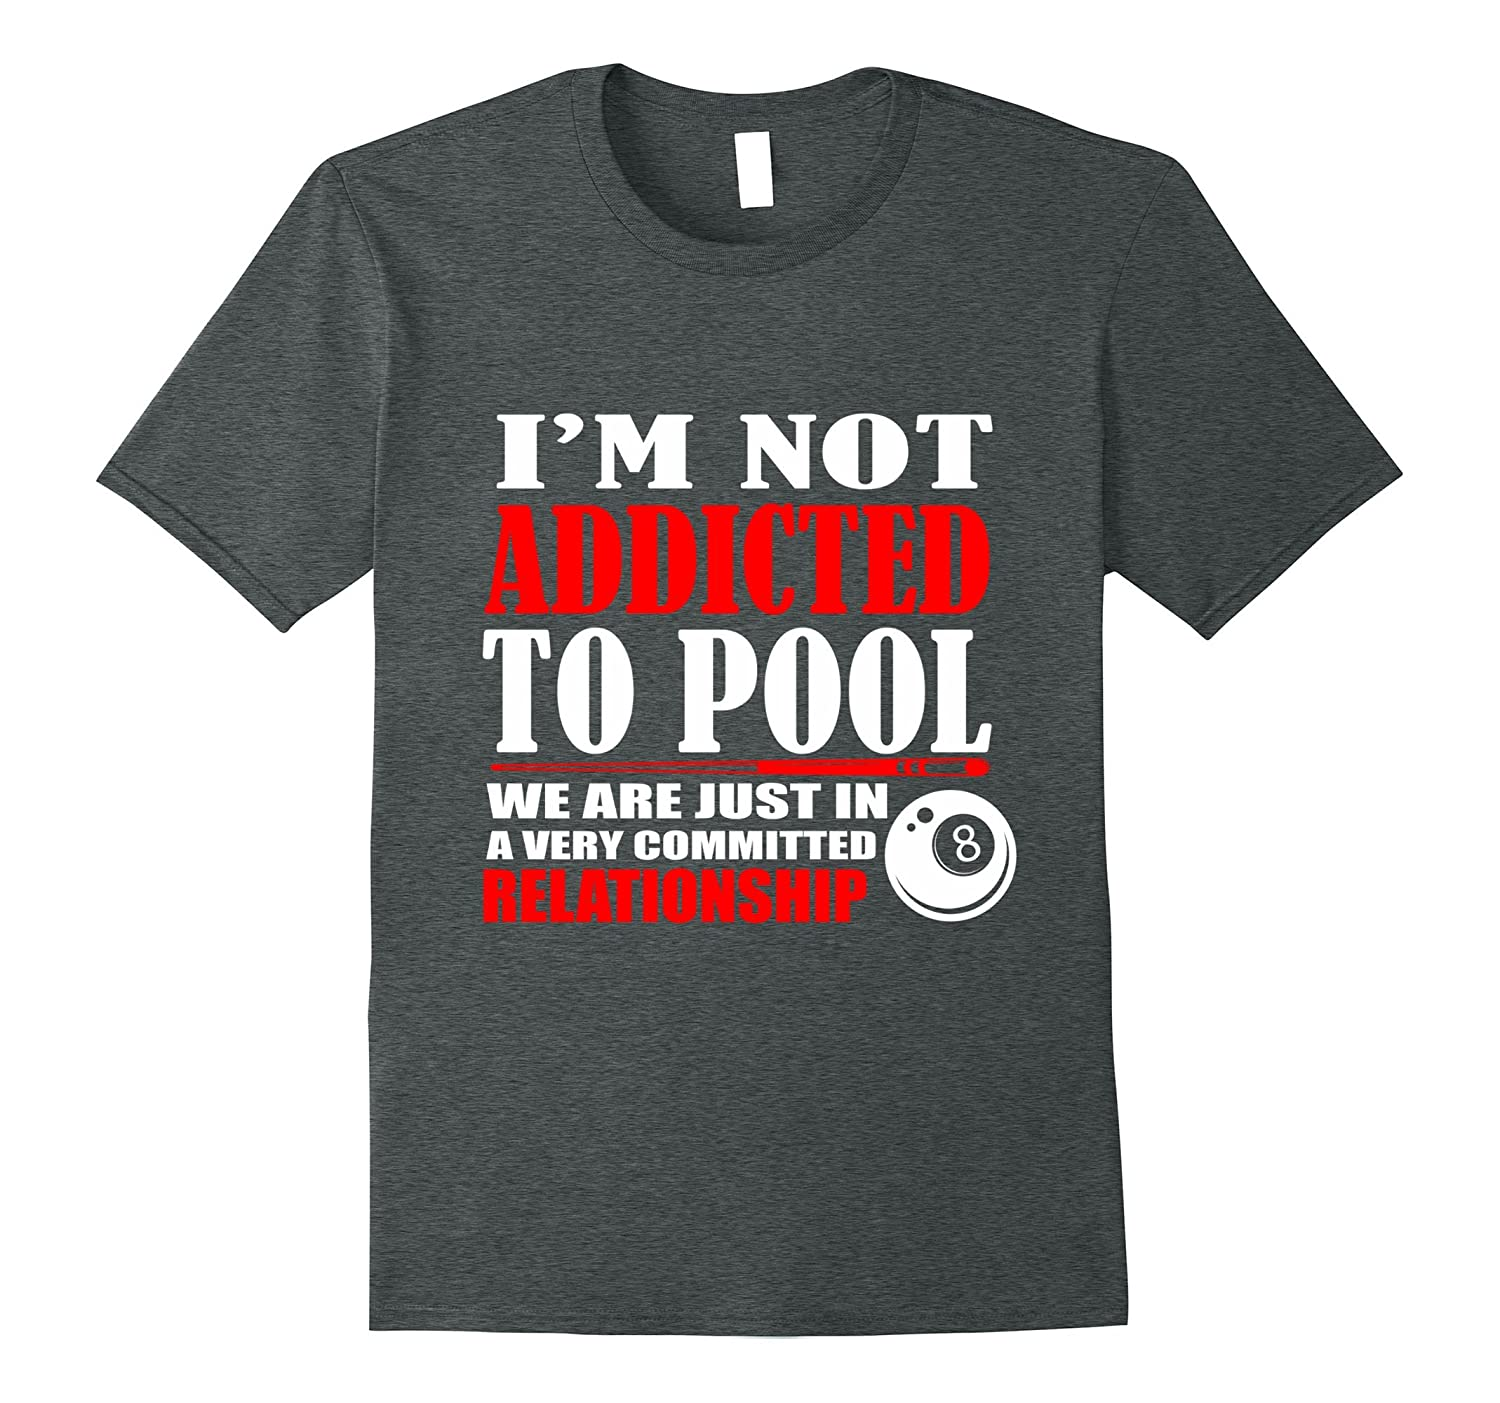 27345d0a0 Funny Billiards T-shirt IM Not Addicted To Pool-PL – Polozatee